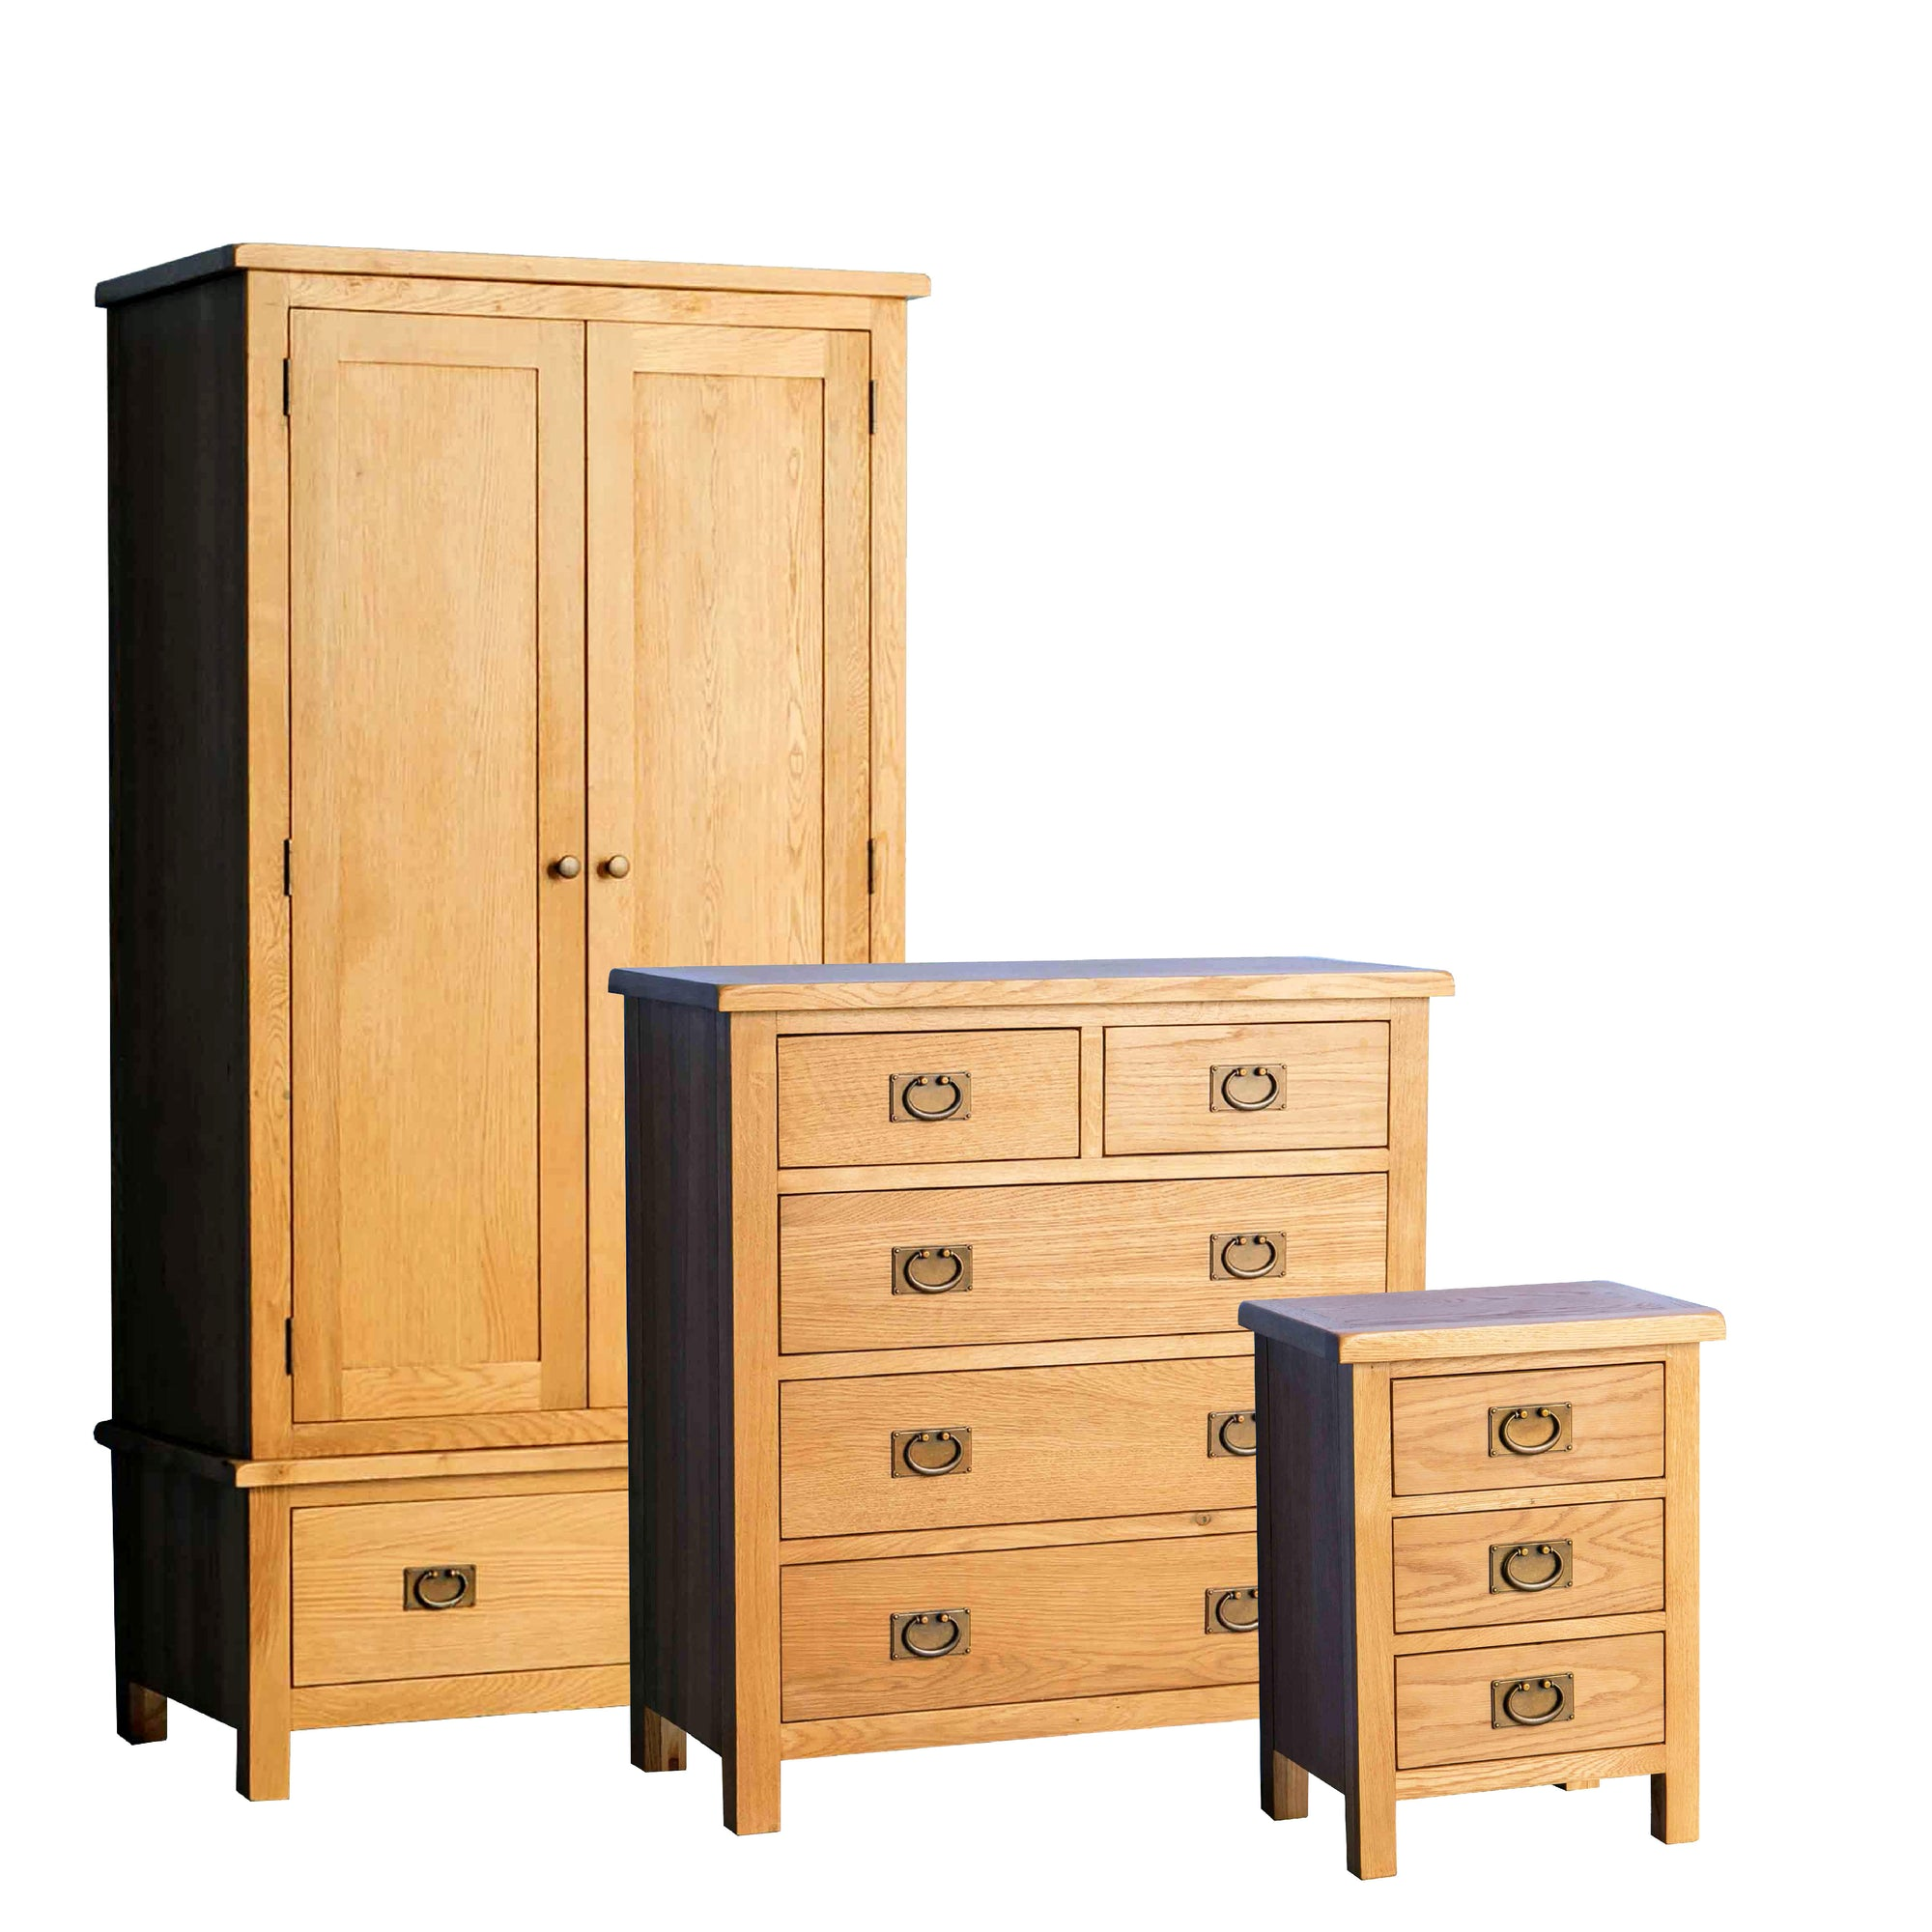 Surrey Oak 3 piece bedroom set by Roseland Furniture